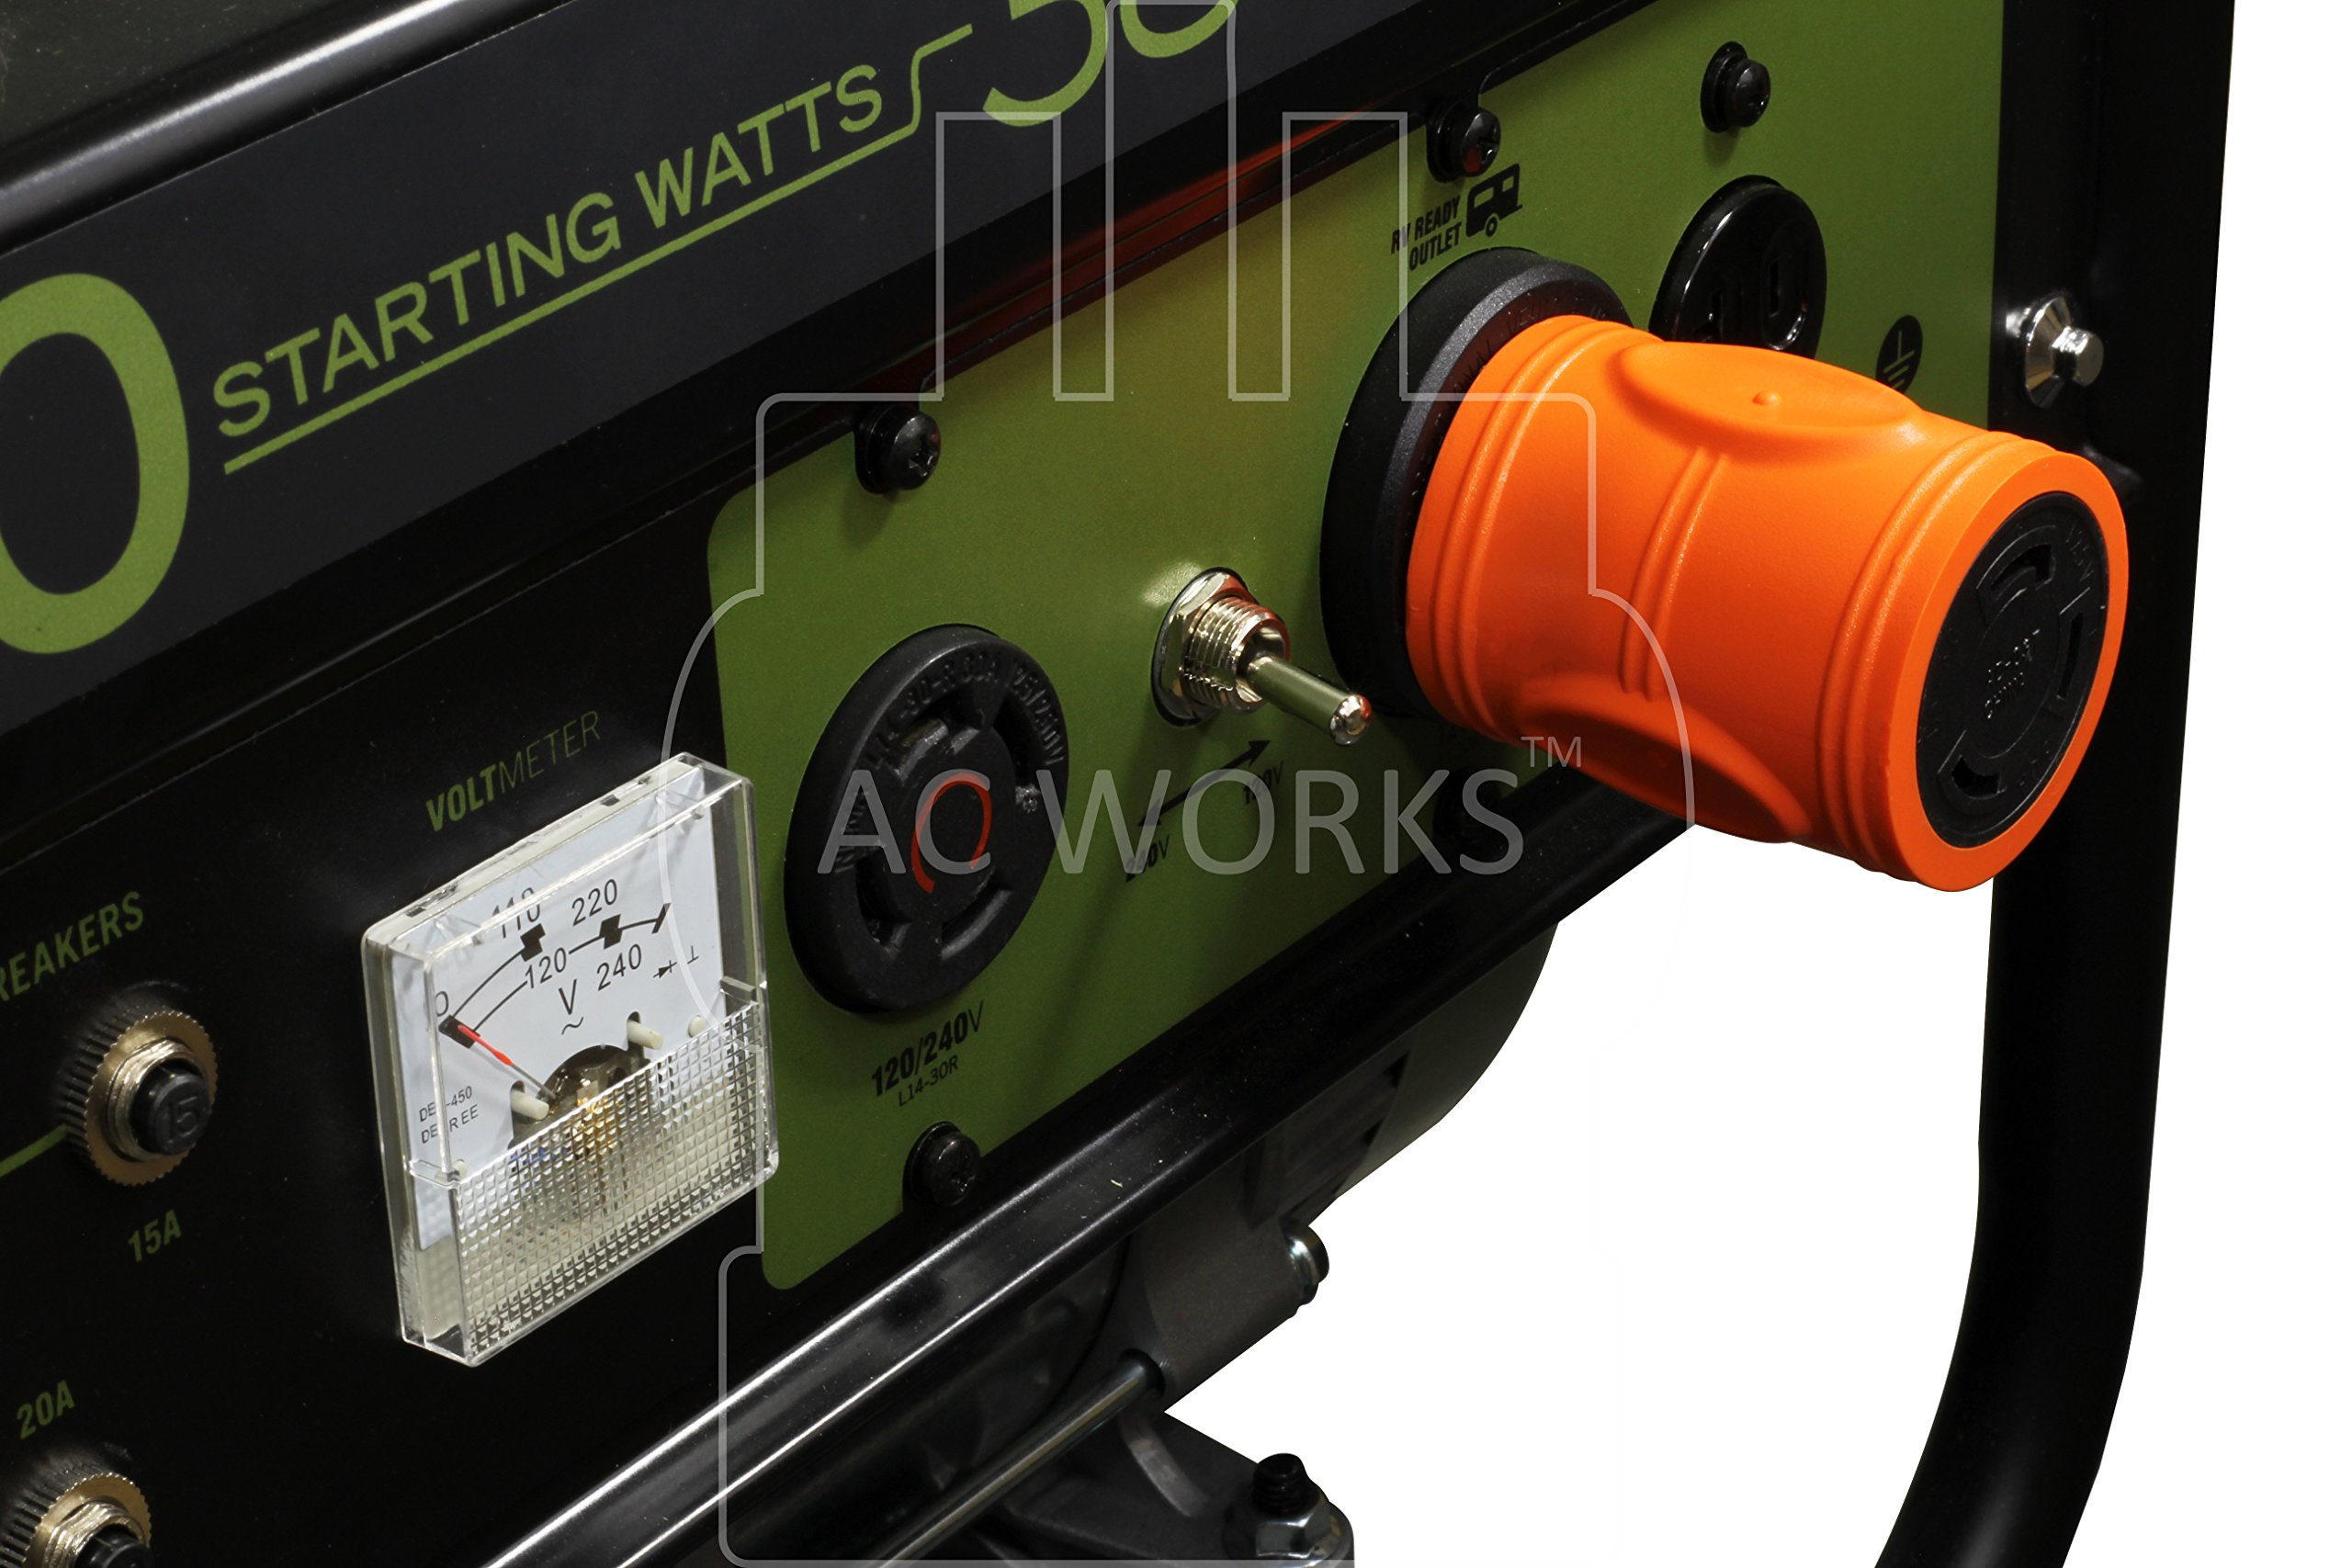 AC WORKS [ADTTL530] Generator Adapter RV 30Amp TT-30P to L5-30R 30Amp 3-Prong Locking Connector by AC WORKS (Image #5)